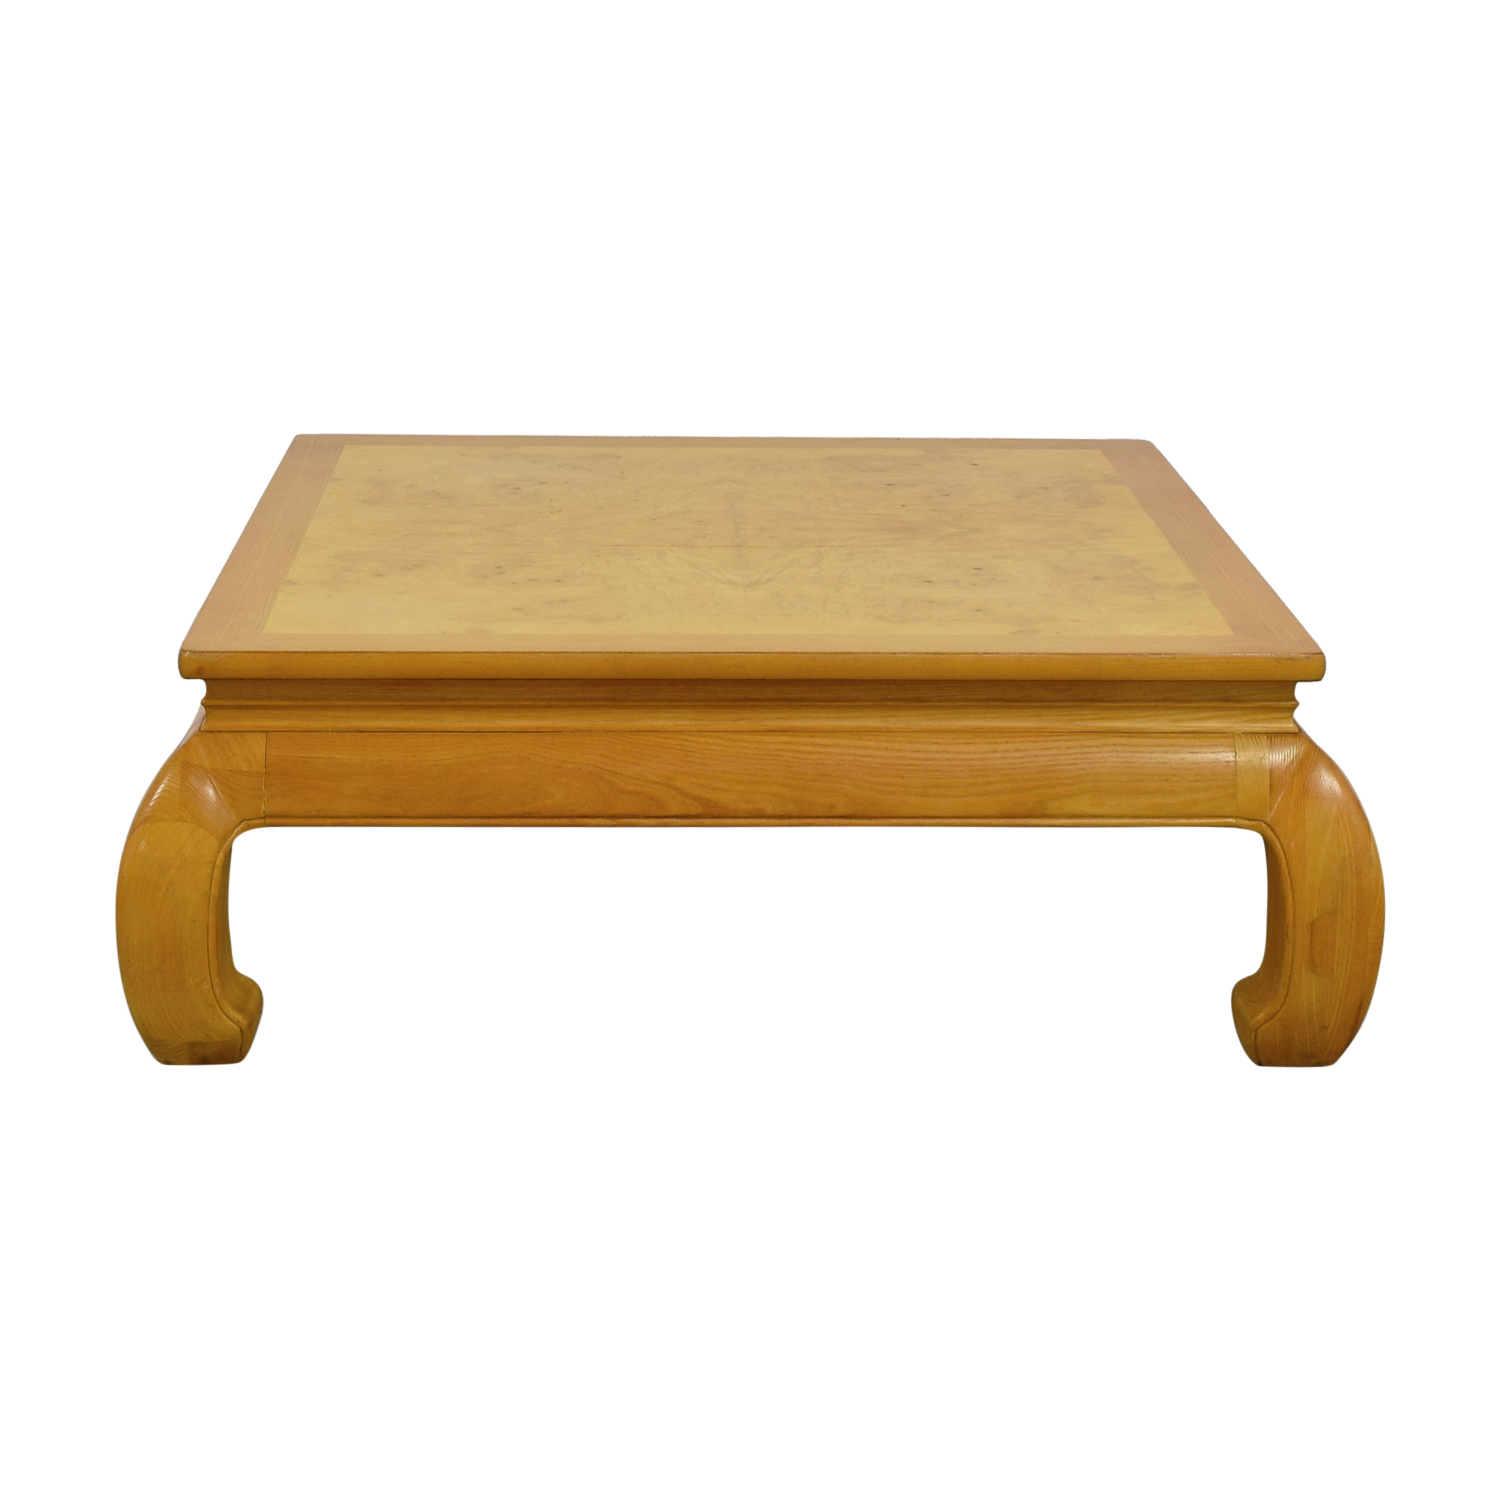 off henredon ming burlwood top coffee table tables burl wood accent yellow oval tablecloth nautical side small mid century light target wicker chairs mosaic patio room essentials